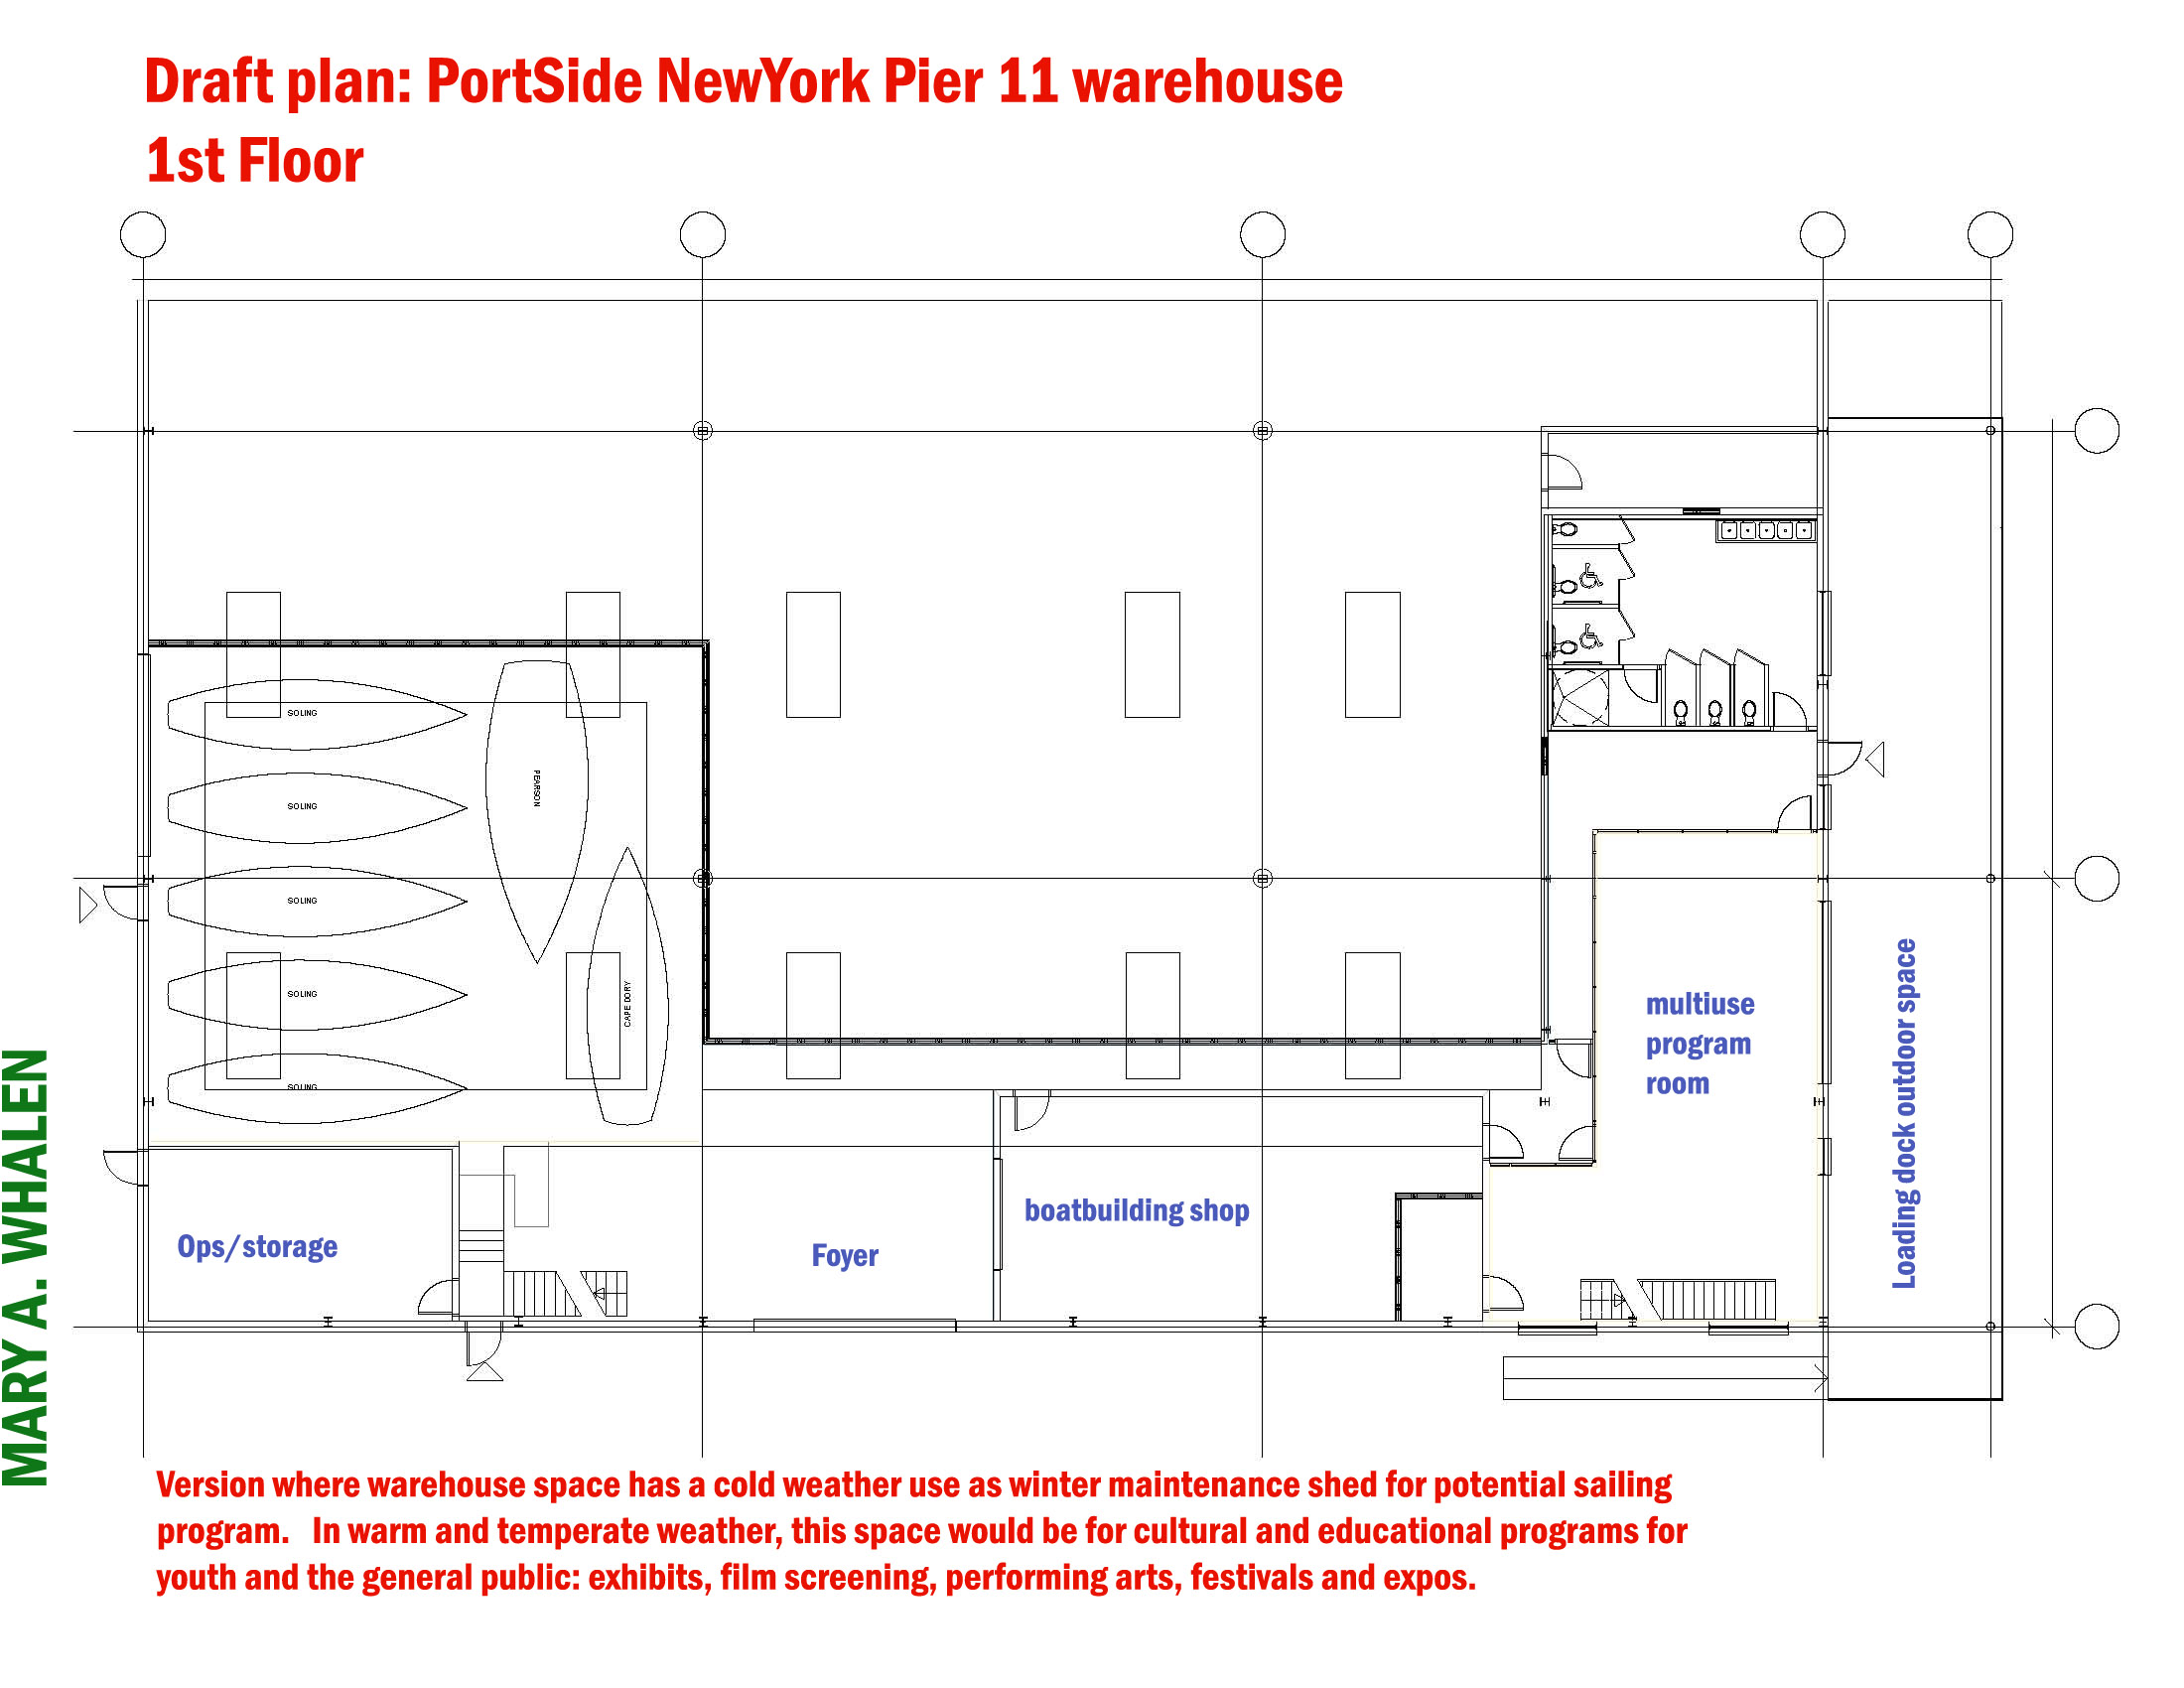 architectural plan by civic architecture workshop. ship maintenance layout by coastwise marine design